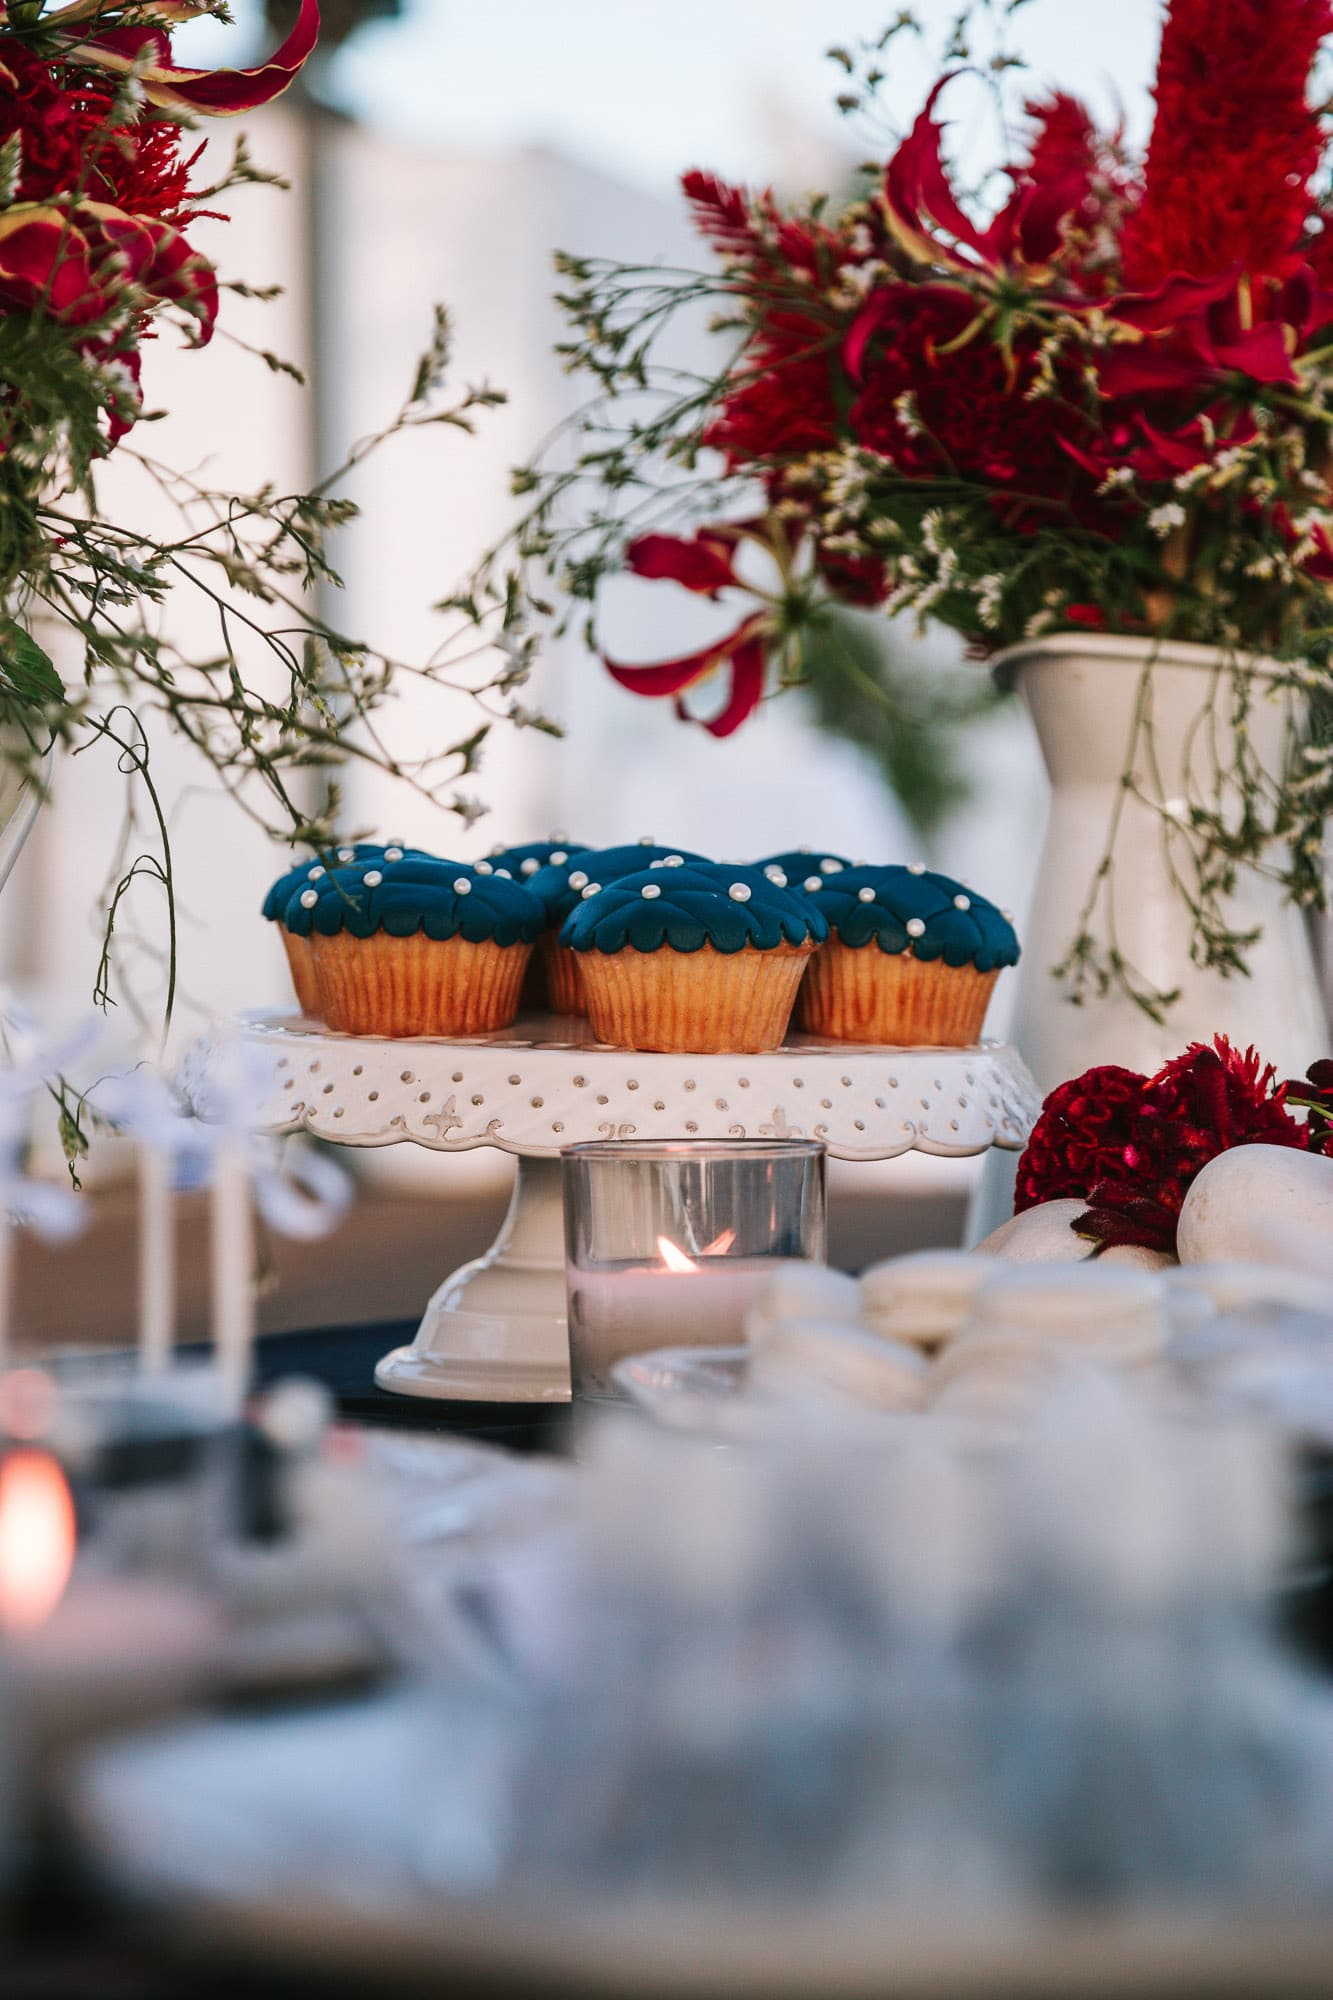 Nautical themed wedding desserts